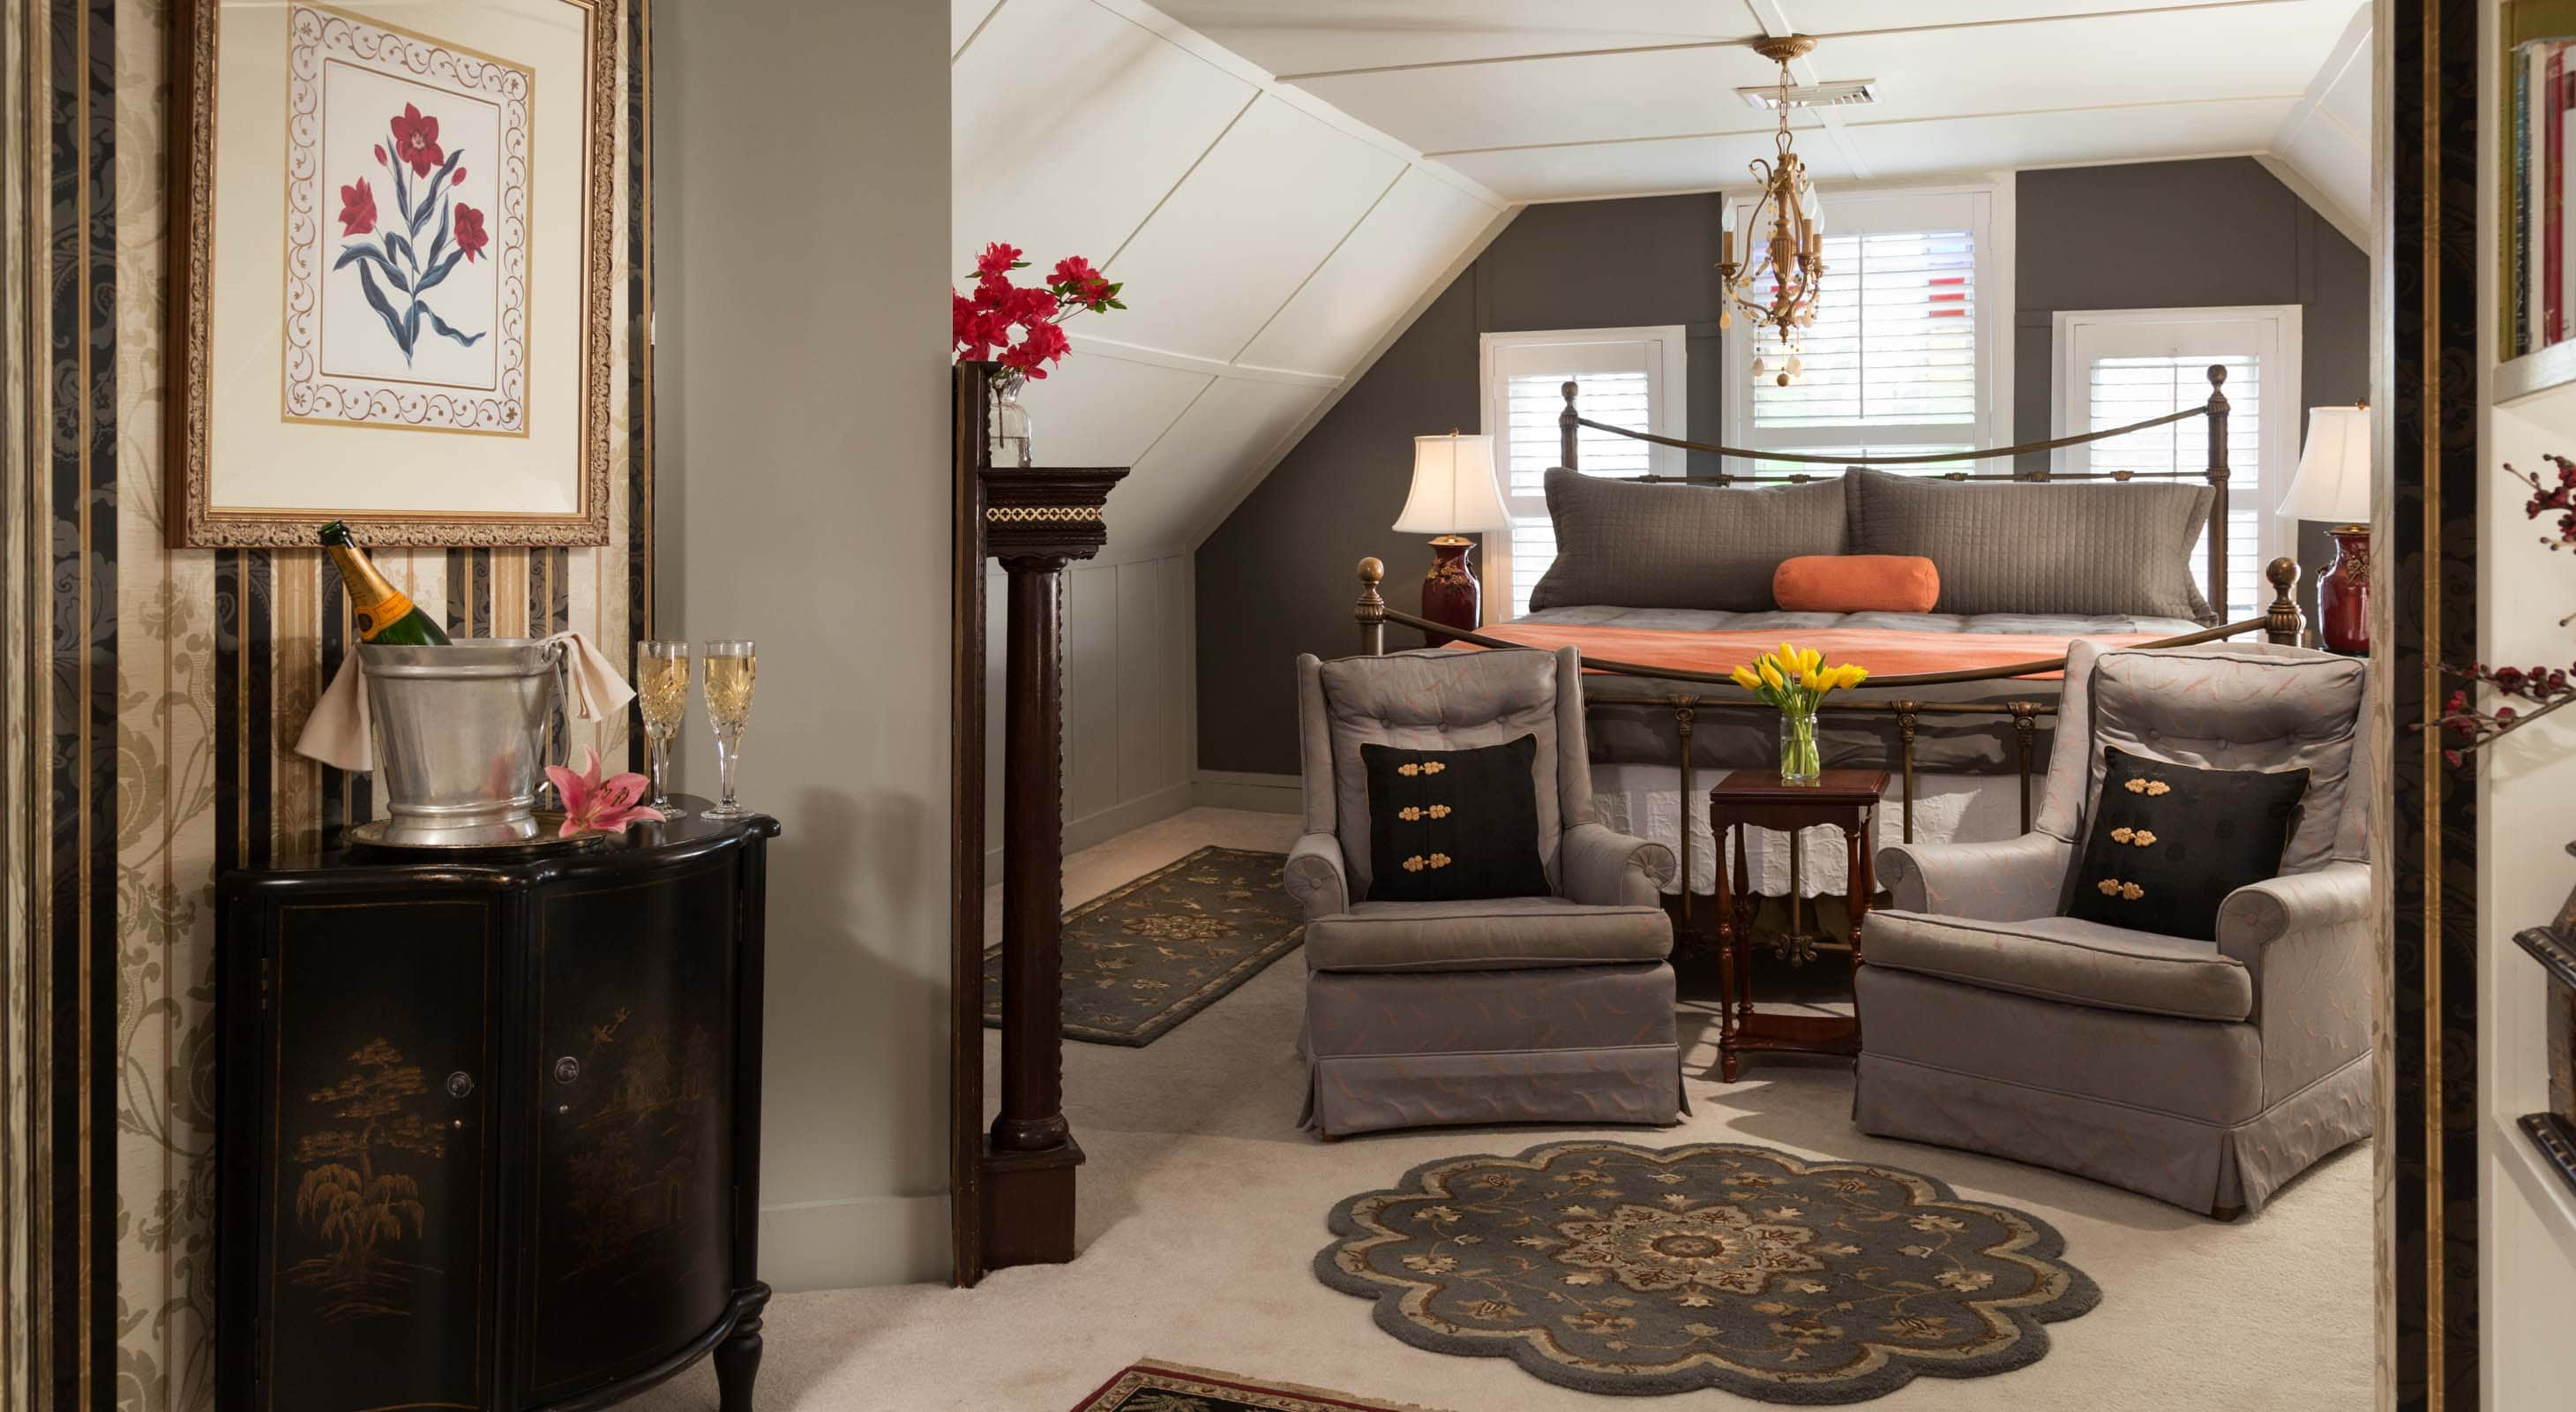 Spacious King Room in Grey and Orange at Our Roanoke Island Inn